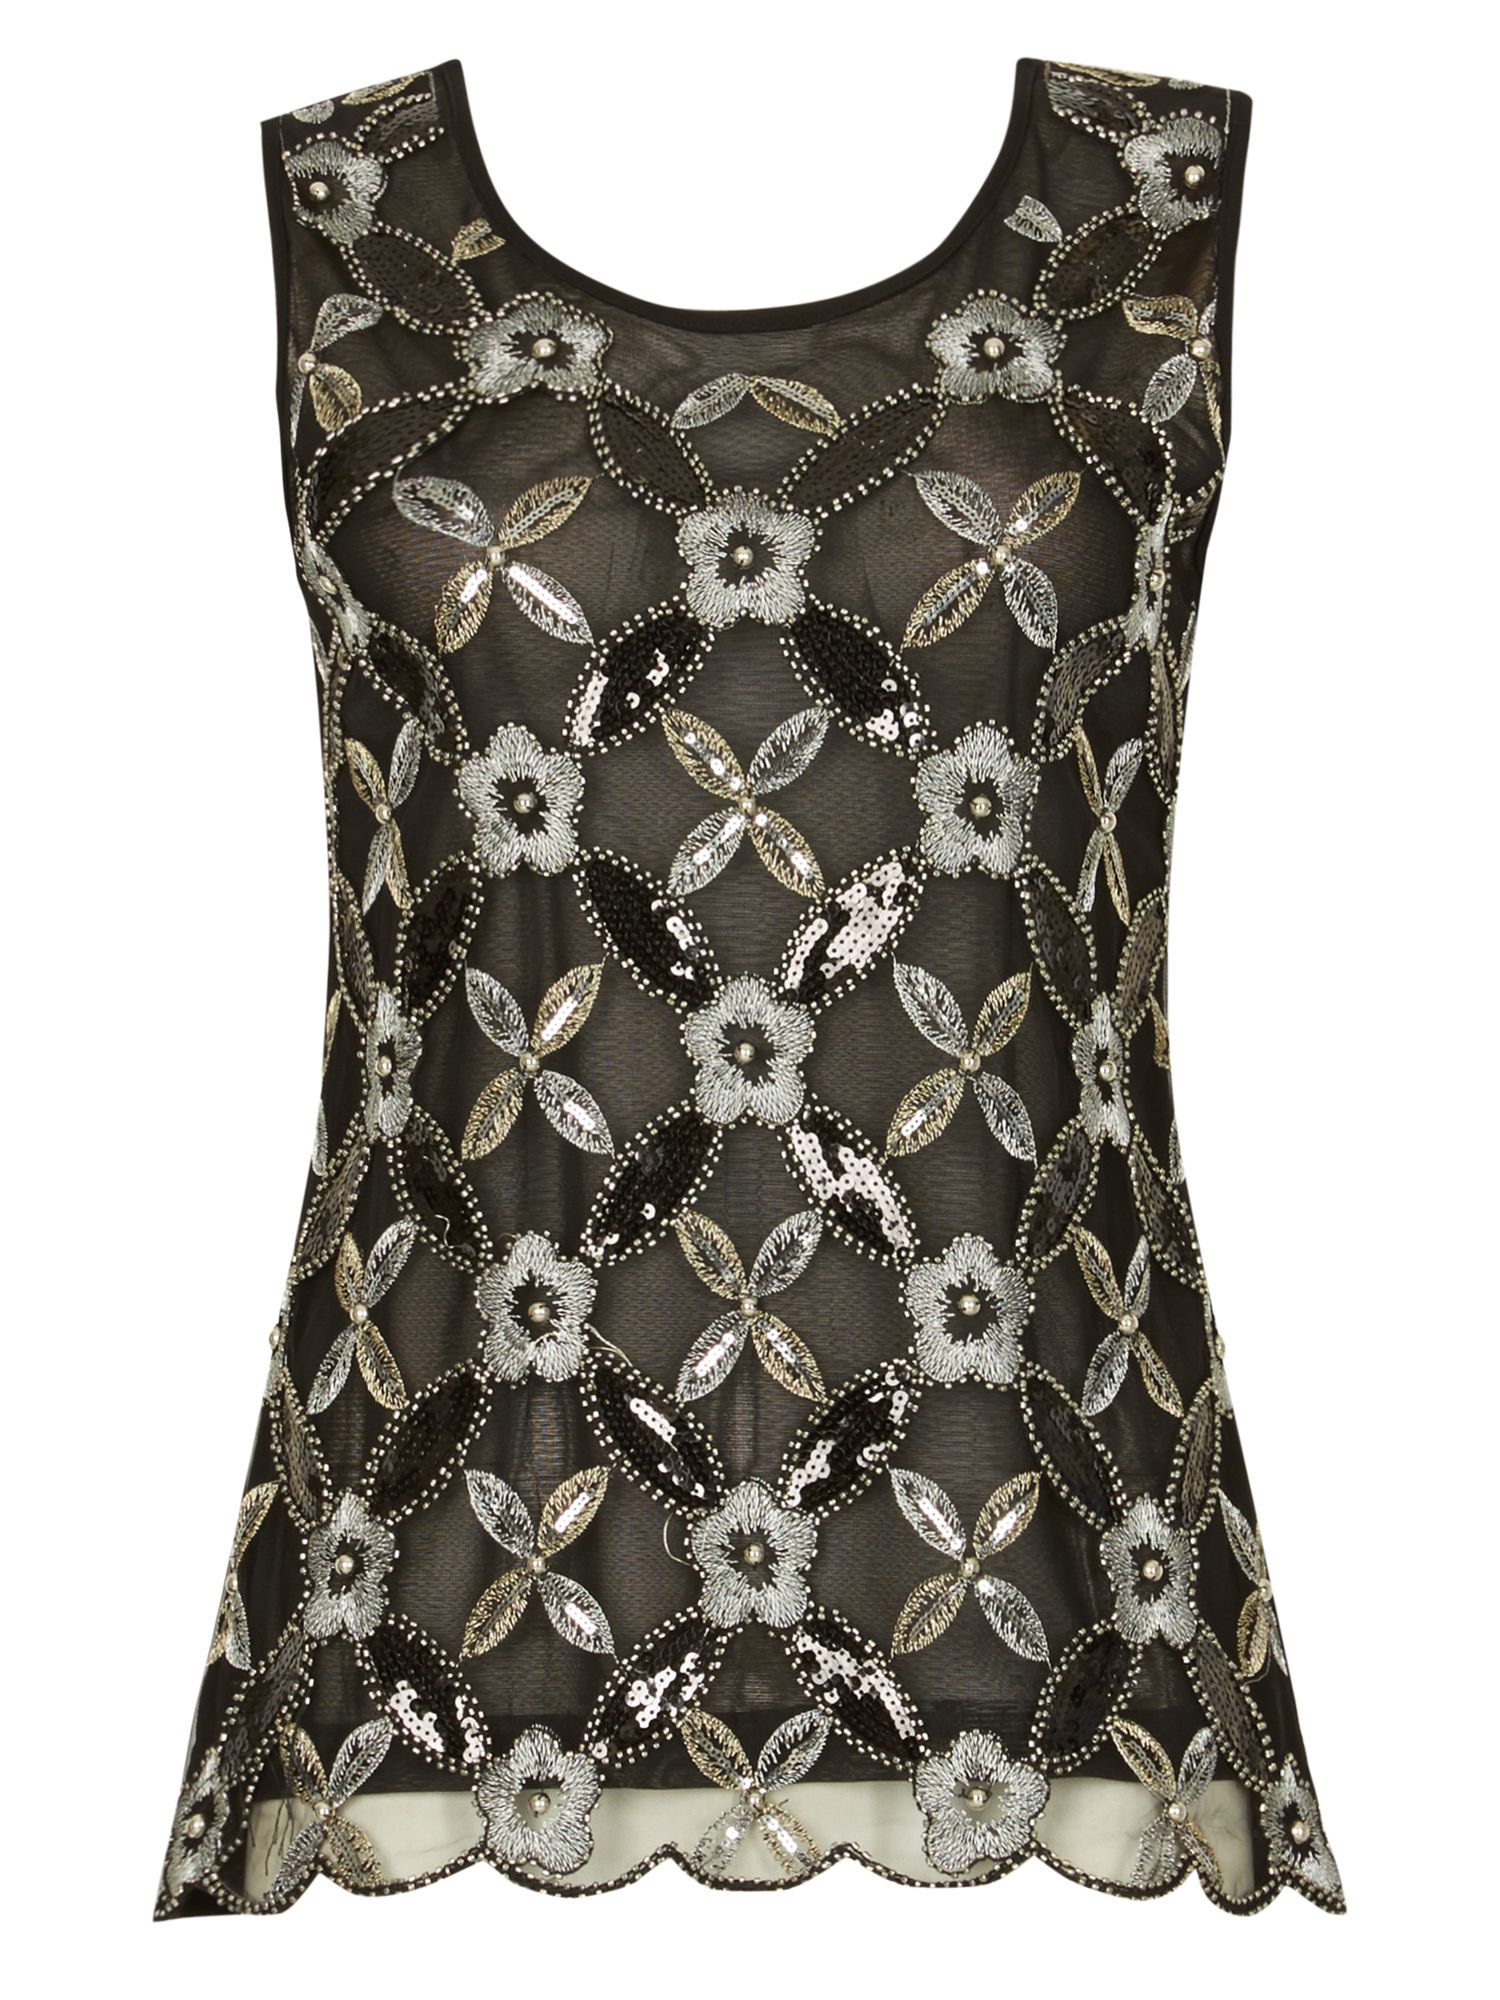 Izabel London Floral Sequin Top, Black